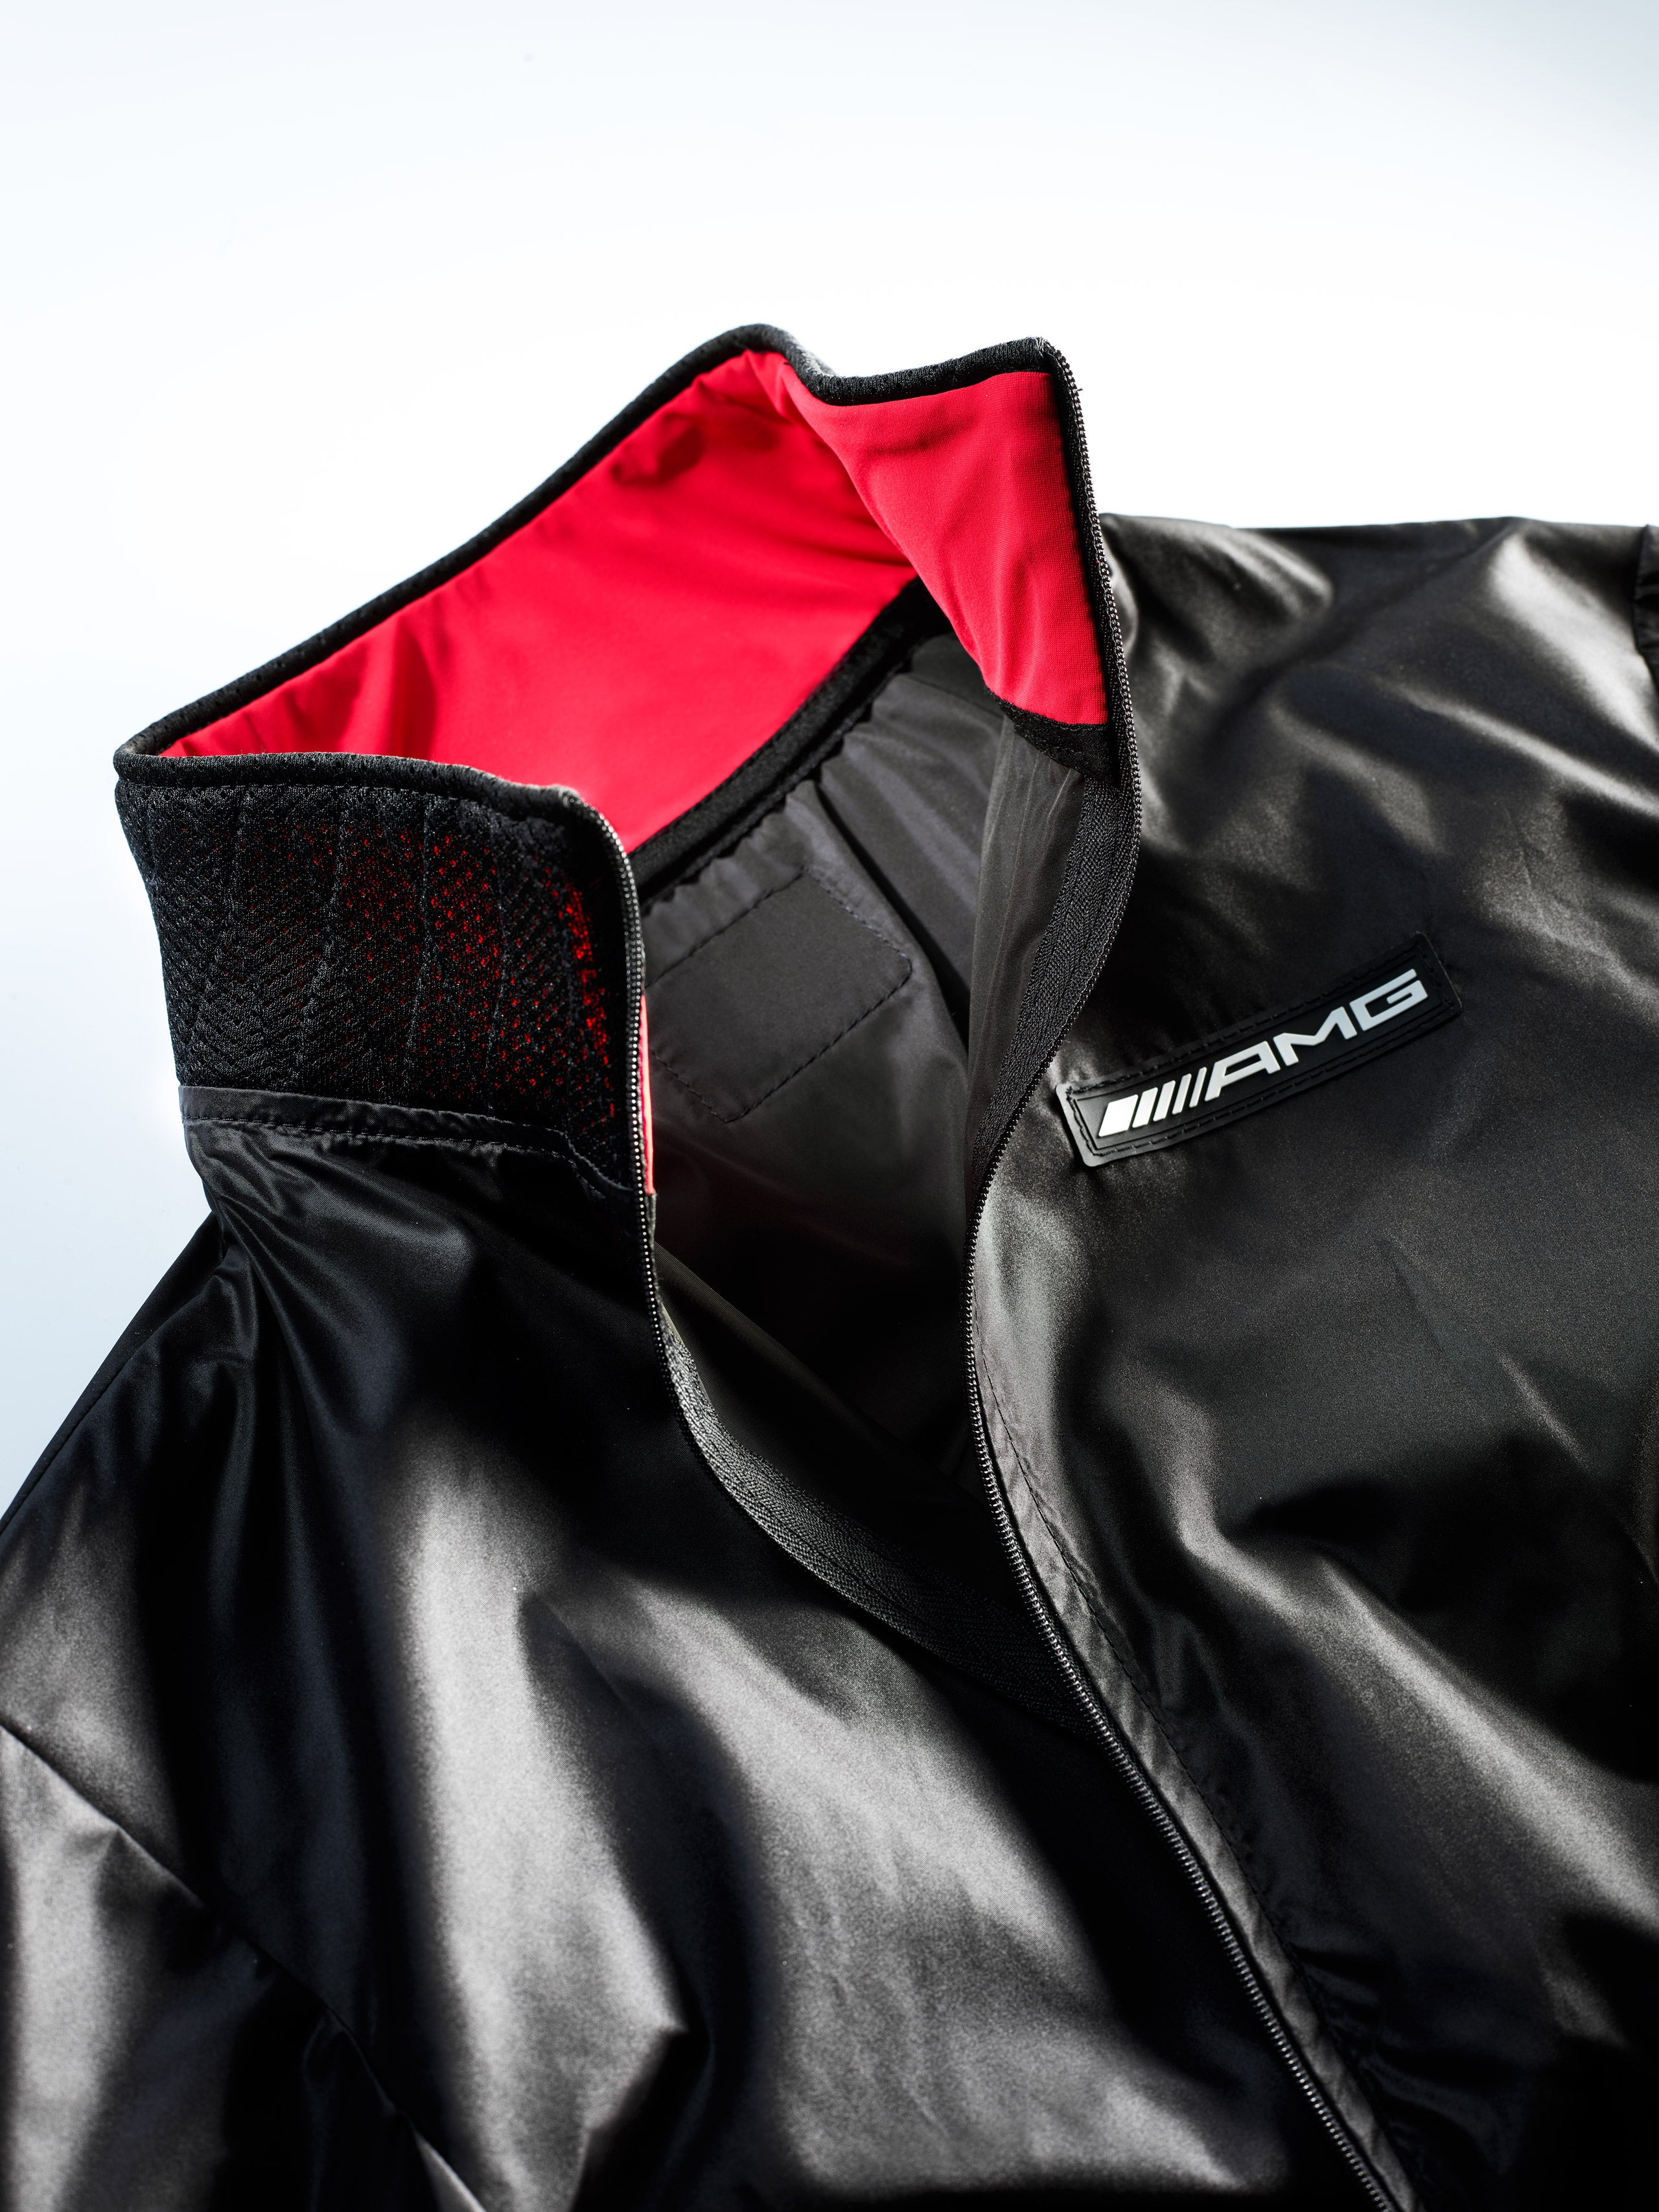 AMG WINDJACKET bundle